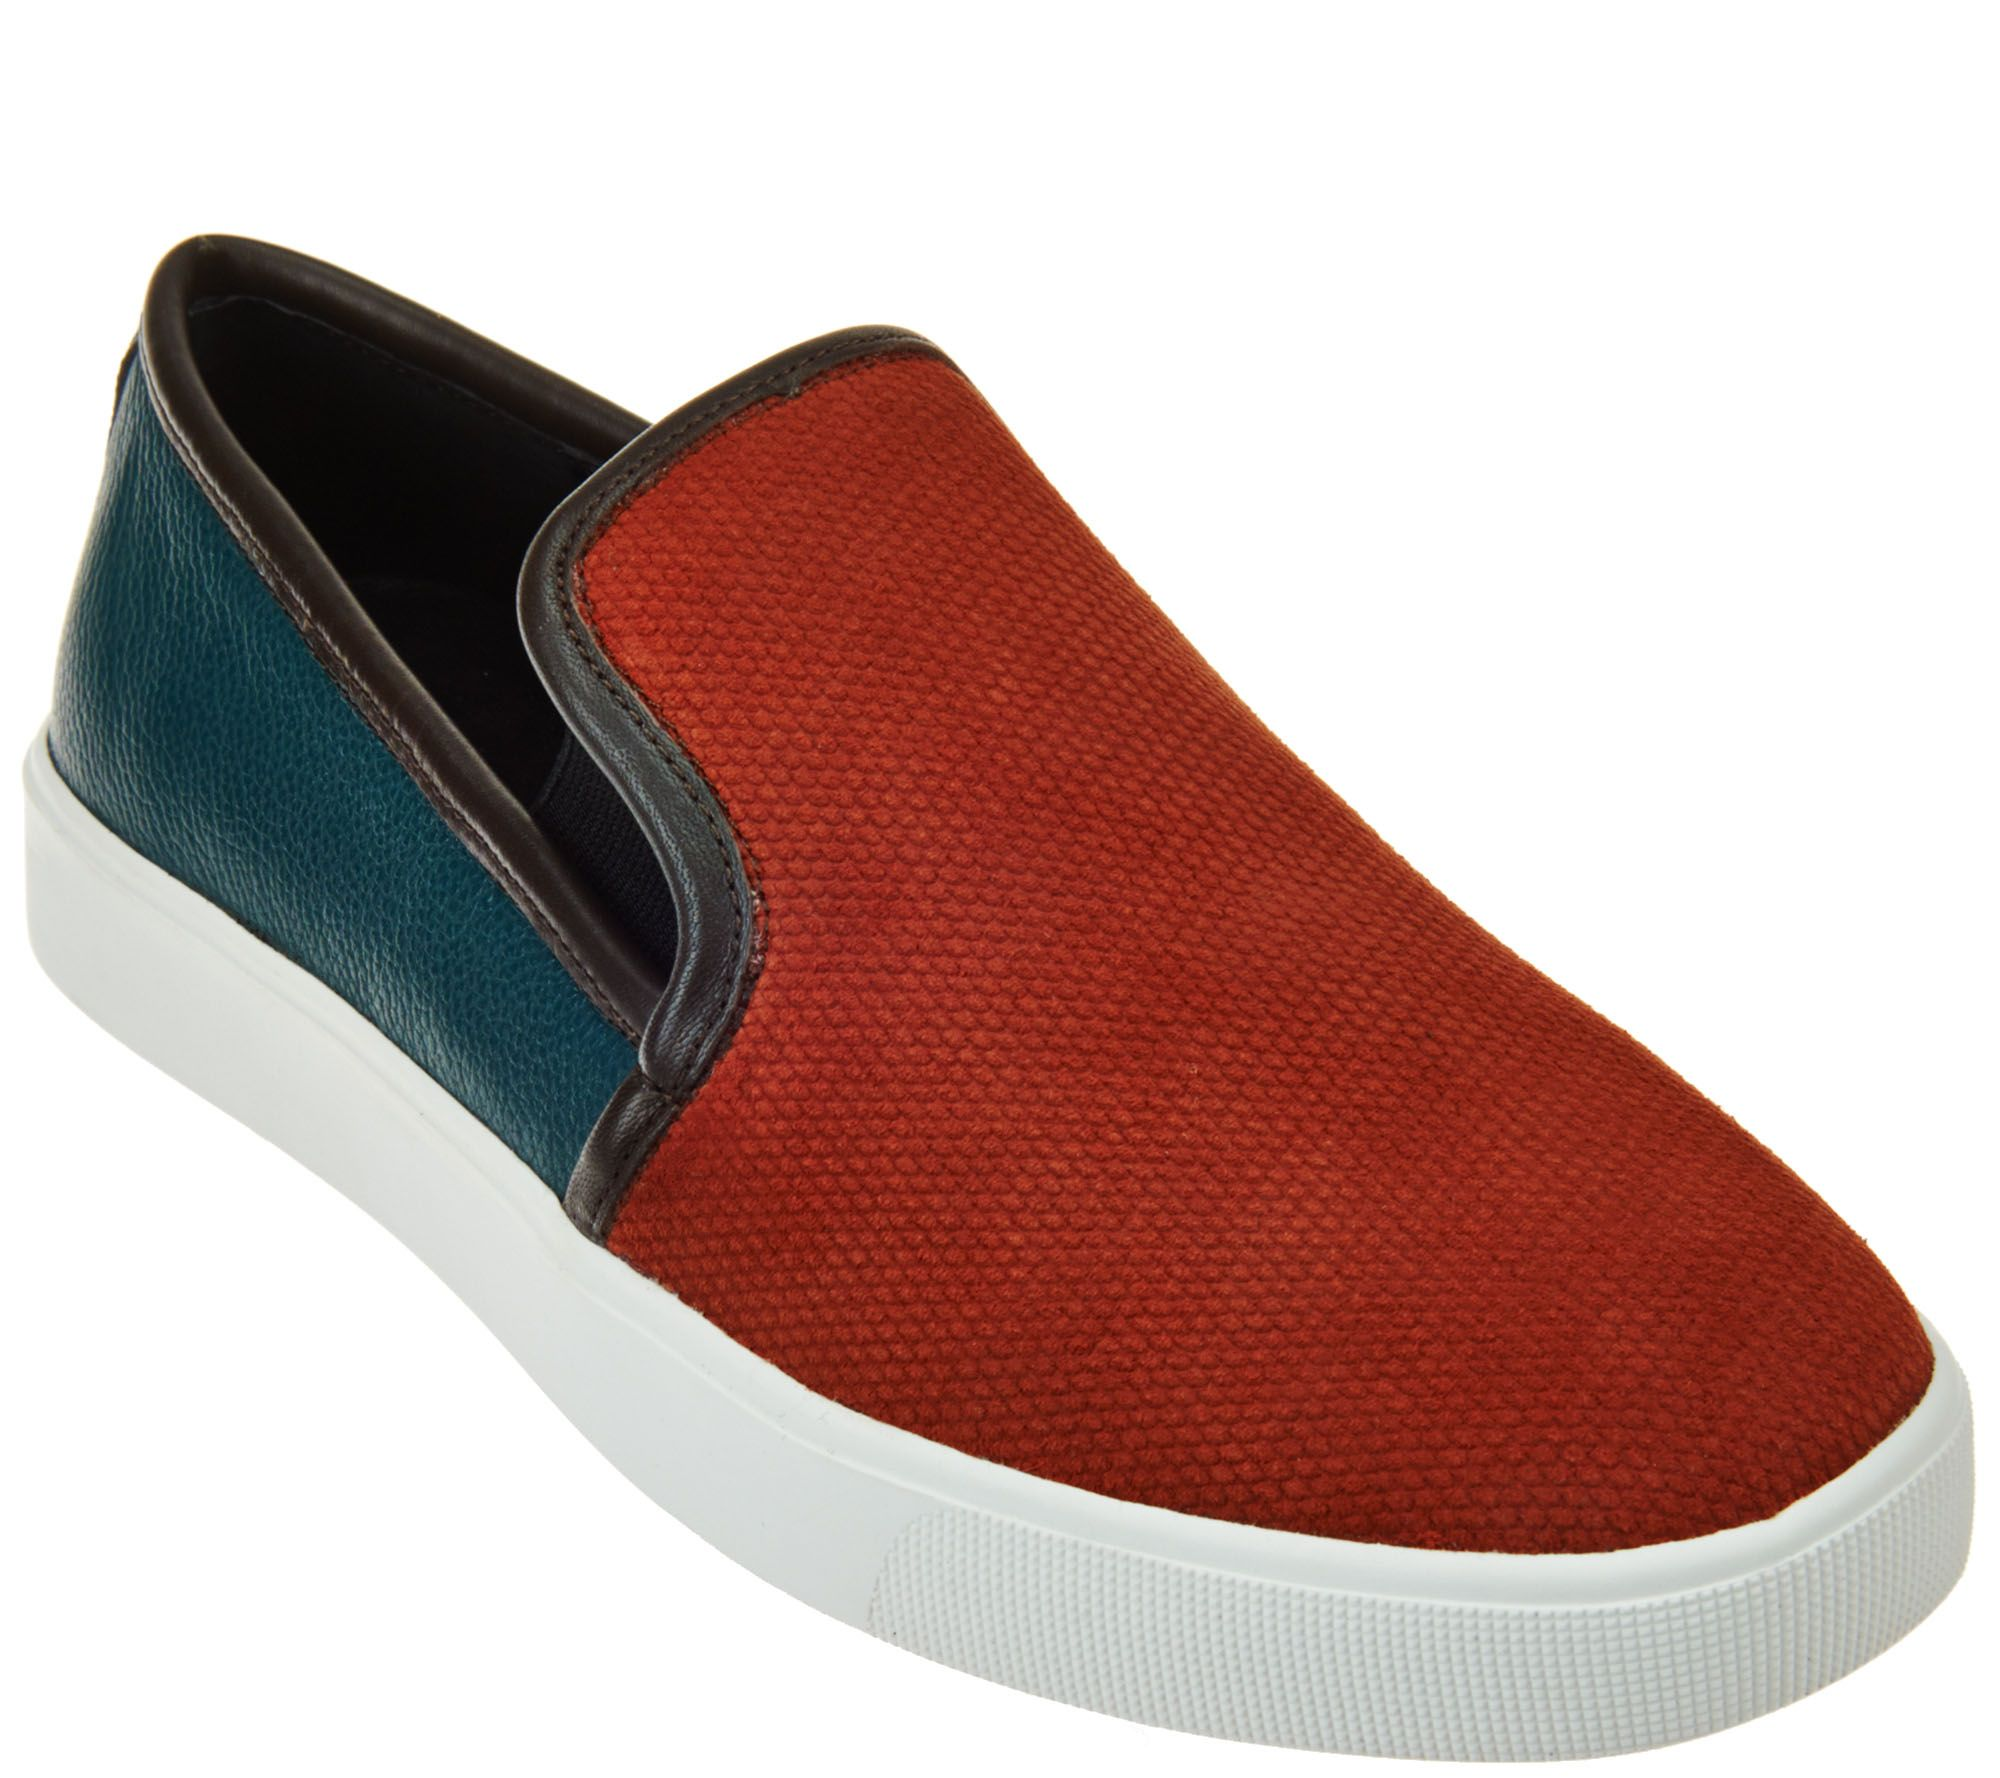 2014 sale online sale looking for LOGO by Lori Goldstein Slip-on Sneakers cheap sale amazing price store sale tL7IsO